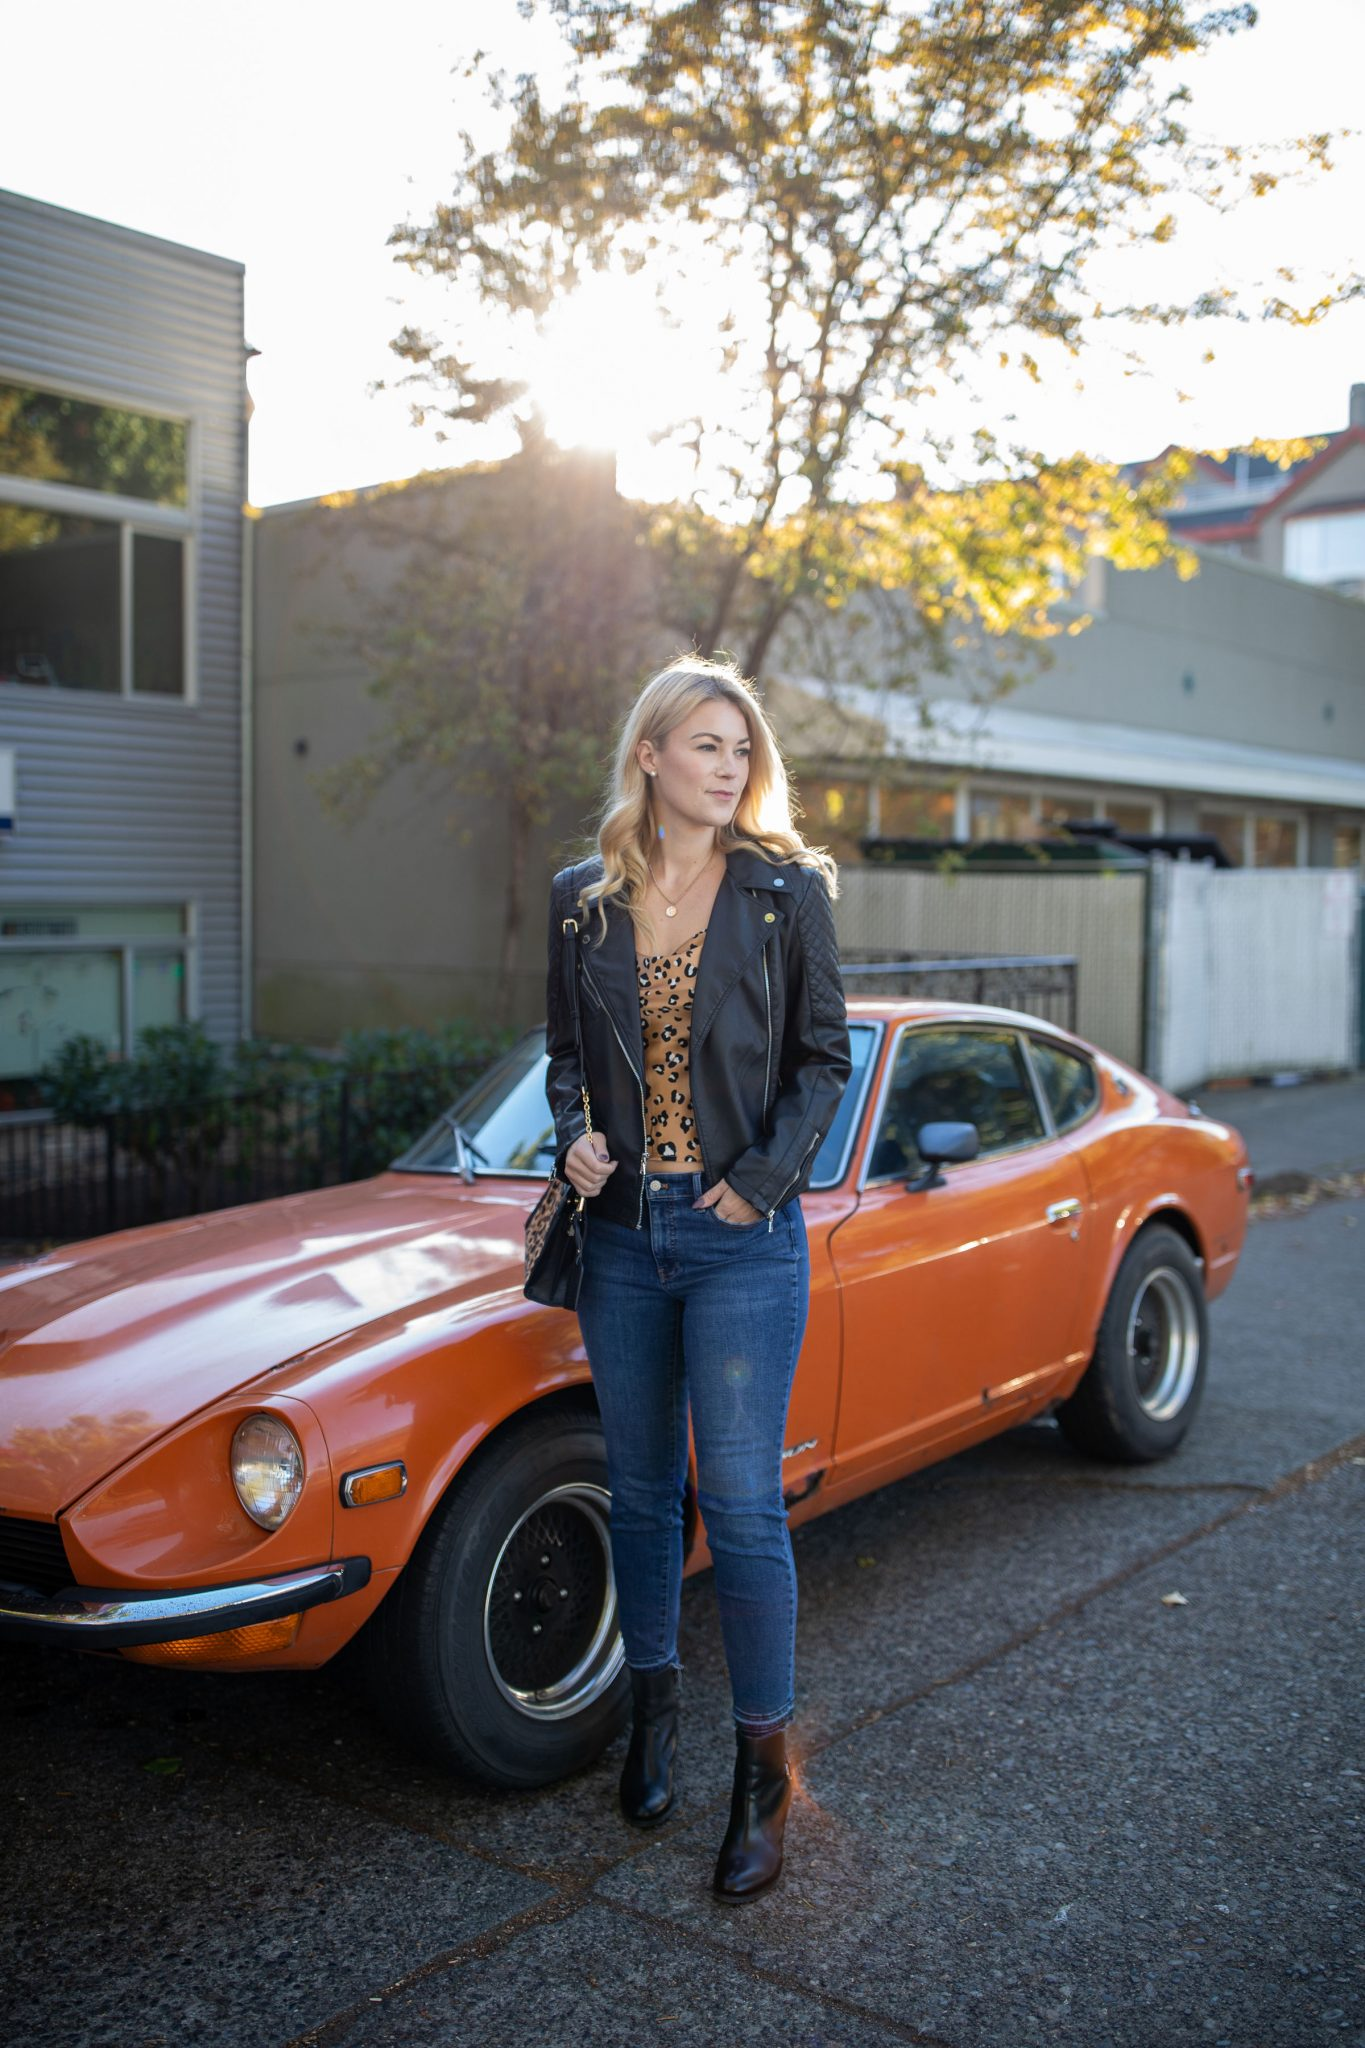 Leather Jacket by popular Seattle tall fashion blog, Whit Wanders: image of a woman standing in front of a orange sports car and wearing a Express Leather Jacket, Nastygal cami, Madewell jeans, Ralph Lauren Black Booties, and holding a Sole Society Purse.